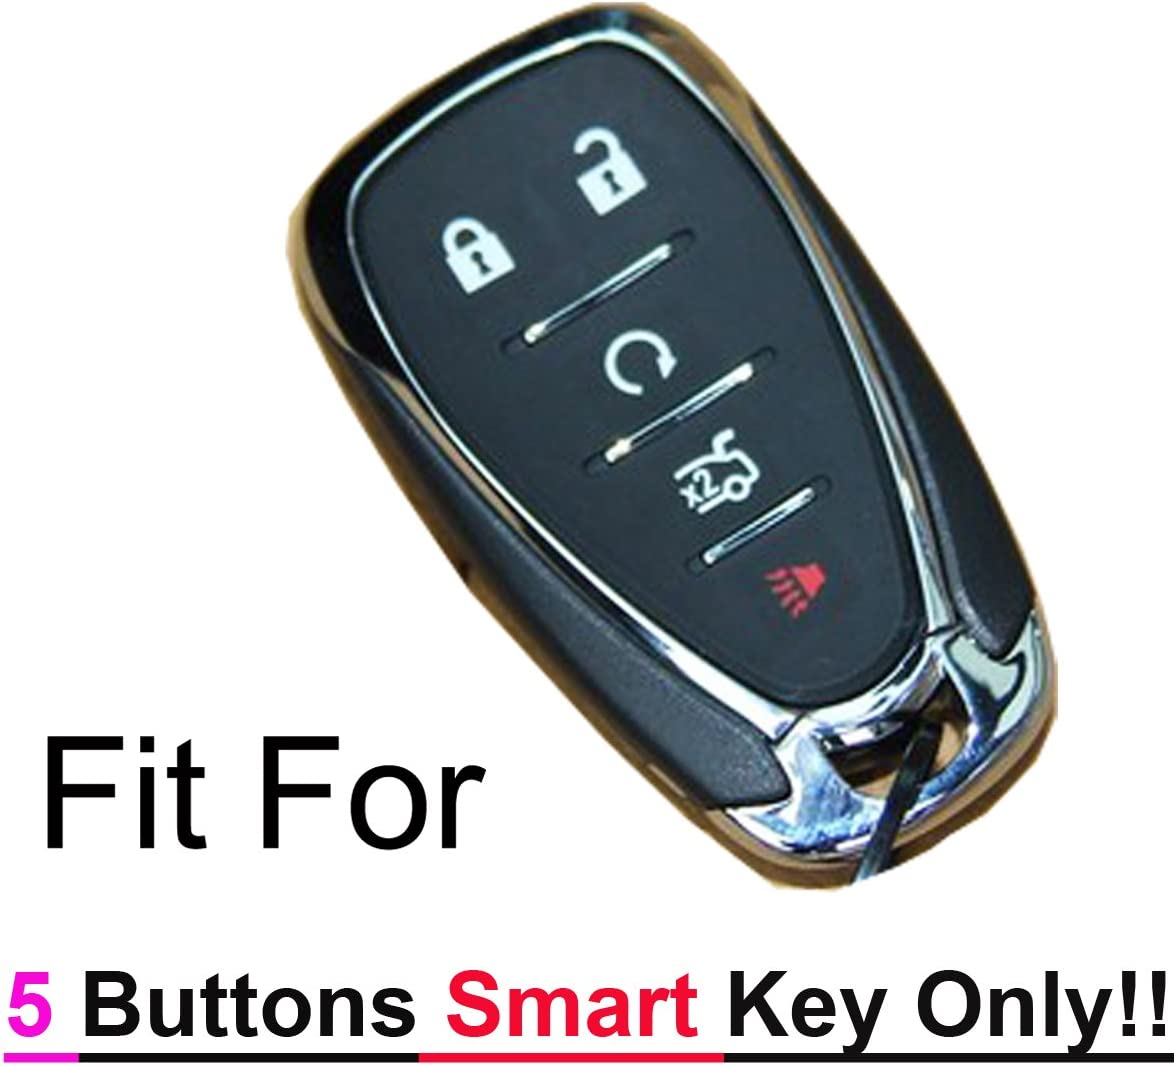 2 Qty Alegender Silicone 5 Buttons Smart Key Cover Case Fob Holder Bag Keyless Protector Fit for 2017 2018 2019 Chevy Malibu Camaro Sonic Cruze Volt Equinox Chevrolet HYQ4EA